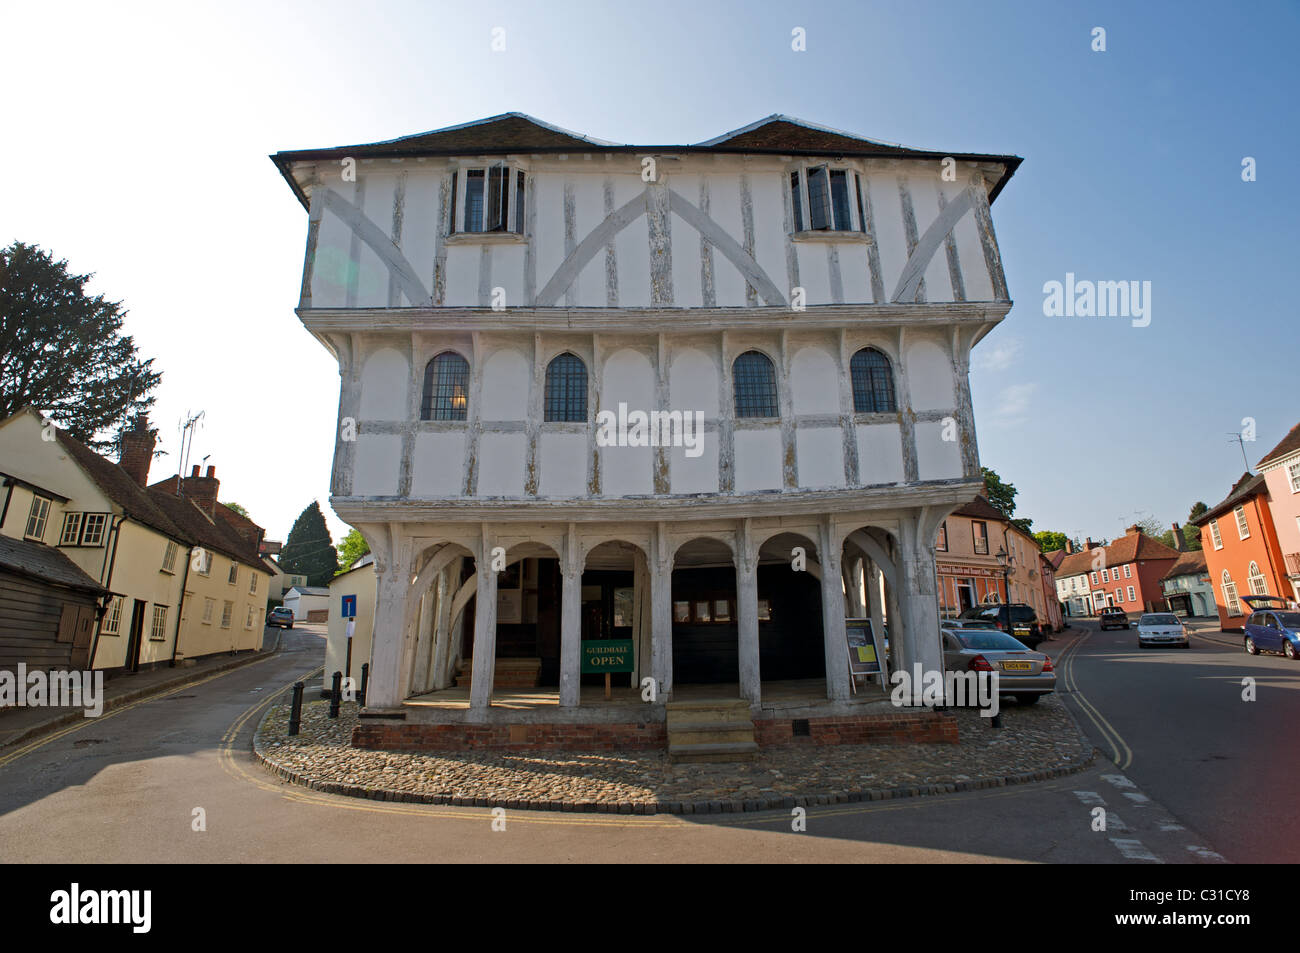 Guildhall, Thaxted, Essex, UK. - Stock Image